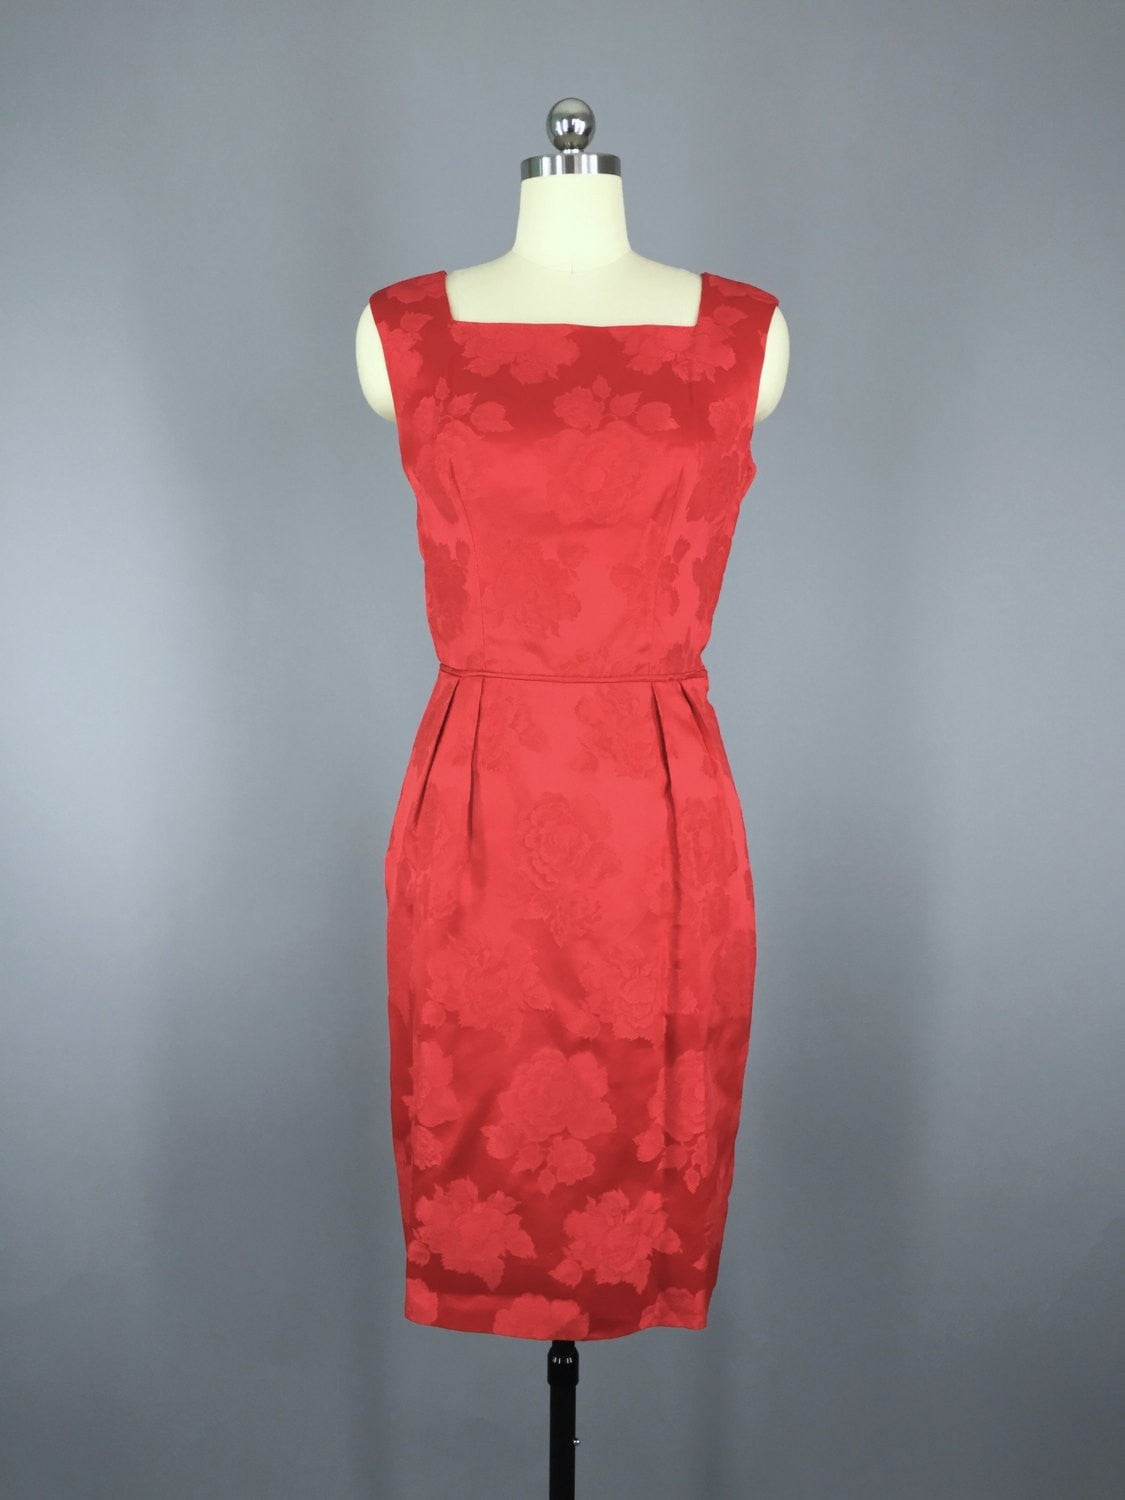 1950s Vintage Red Satin Damask Cocktail Dress Dress ThisBlueBird